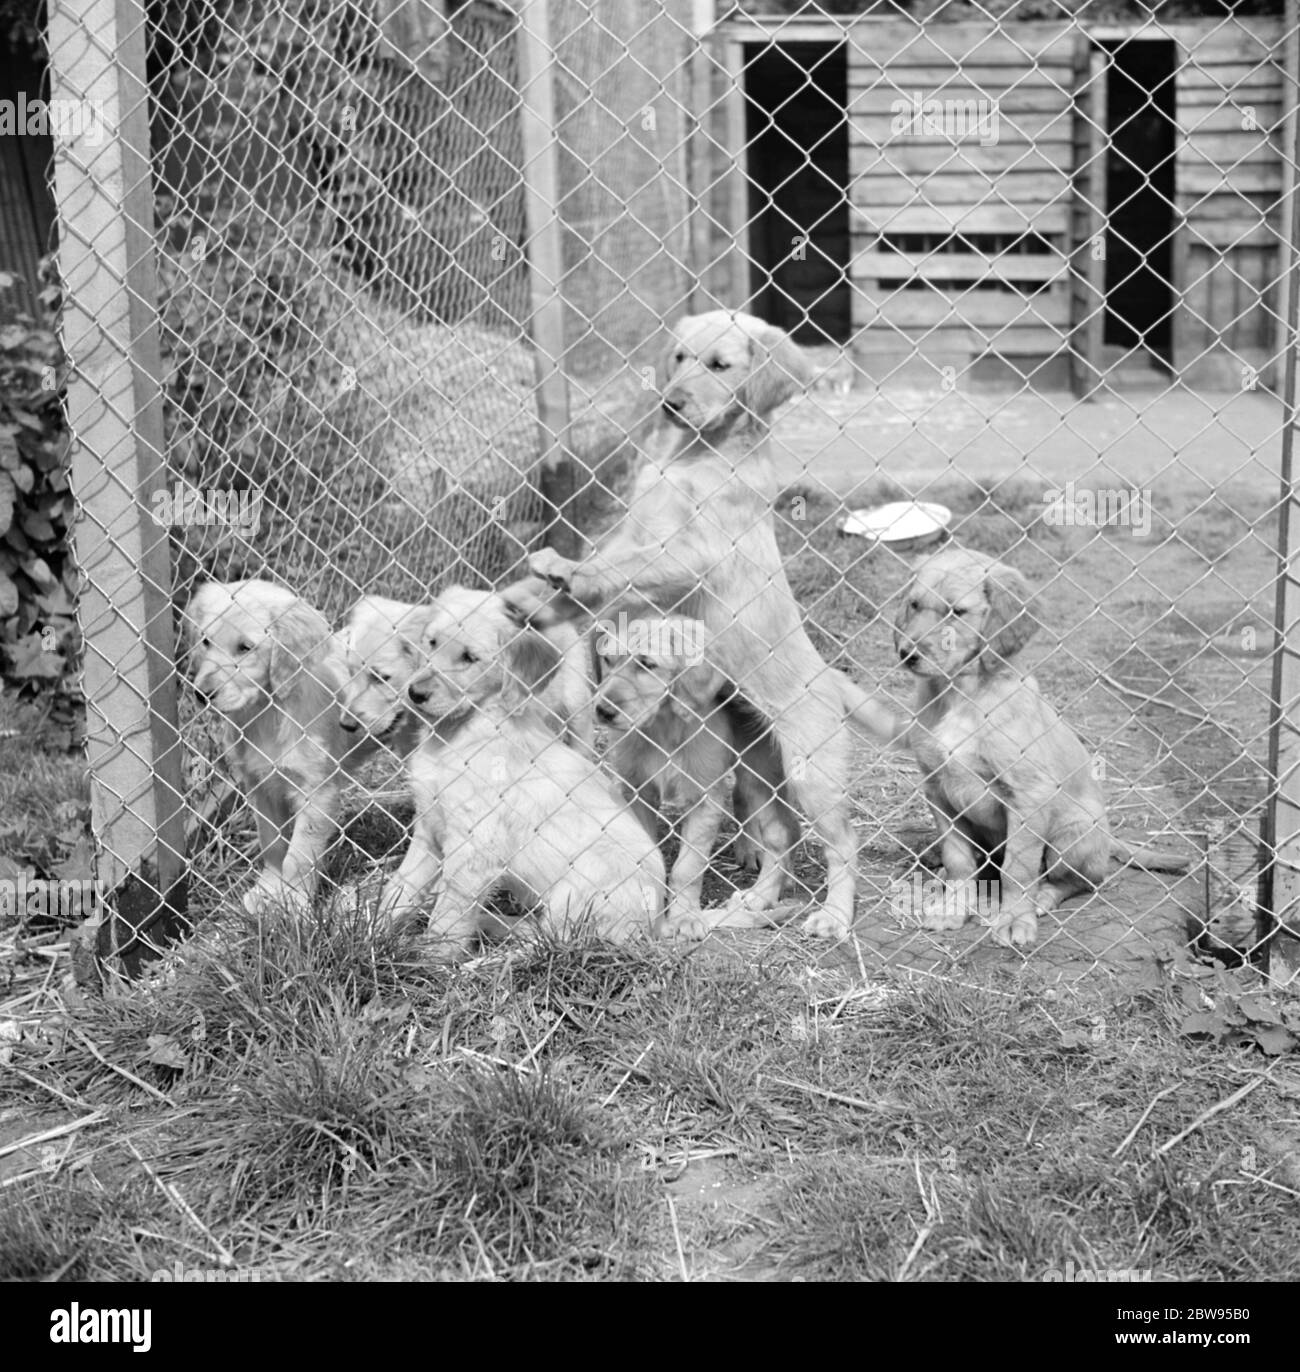 Kennels Black And White Stock Photos Images Alamy